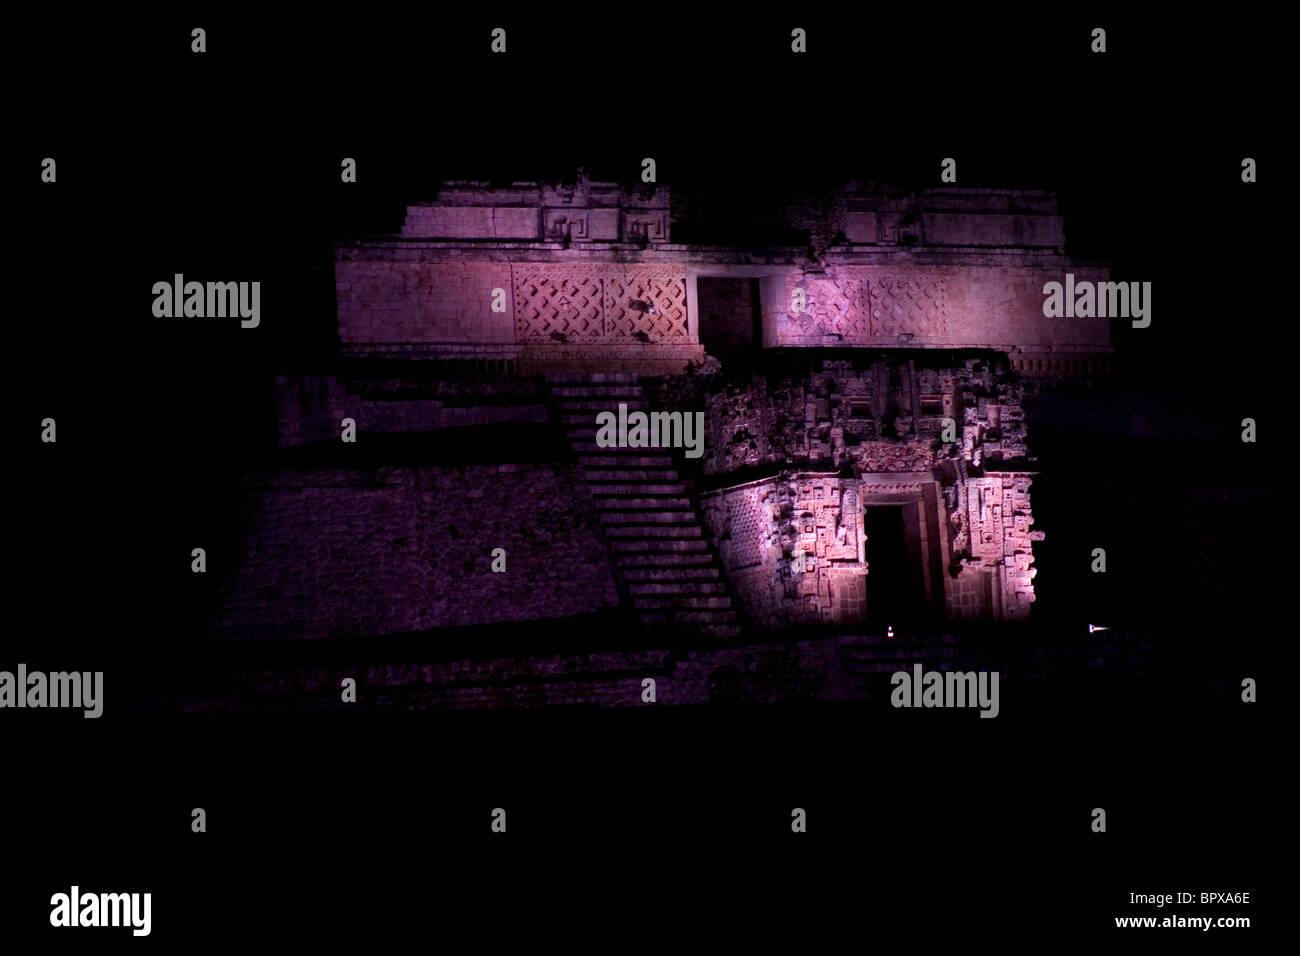 The Magician Pyramid of the Mayan ruins of Uxmal during a theatric laser light show in Yucatan peninsula, Mexico, - Stock Image